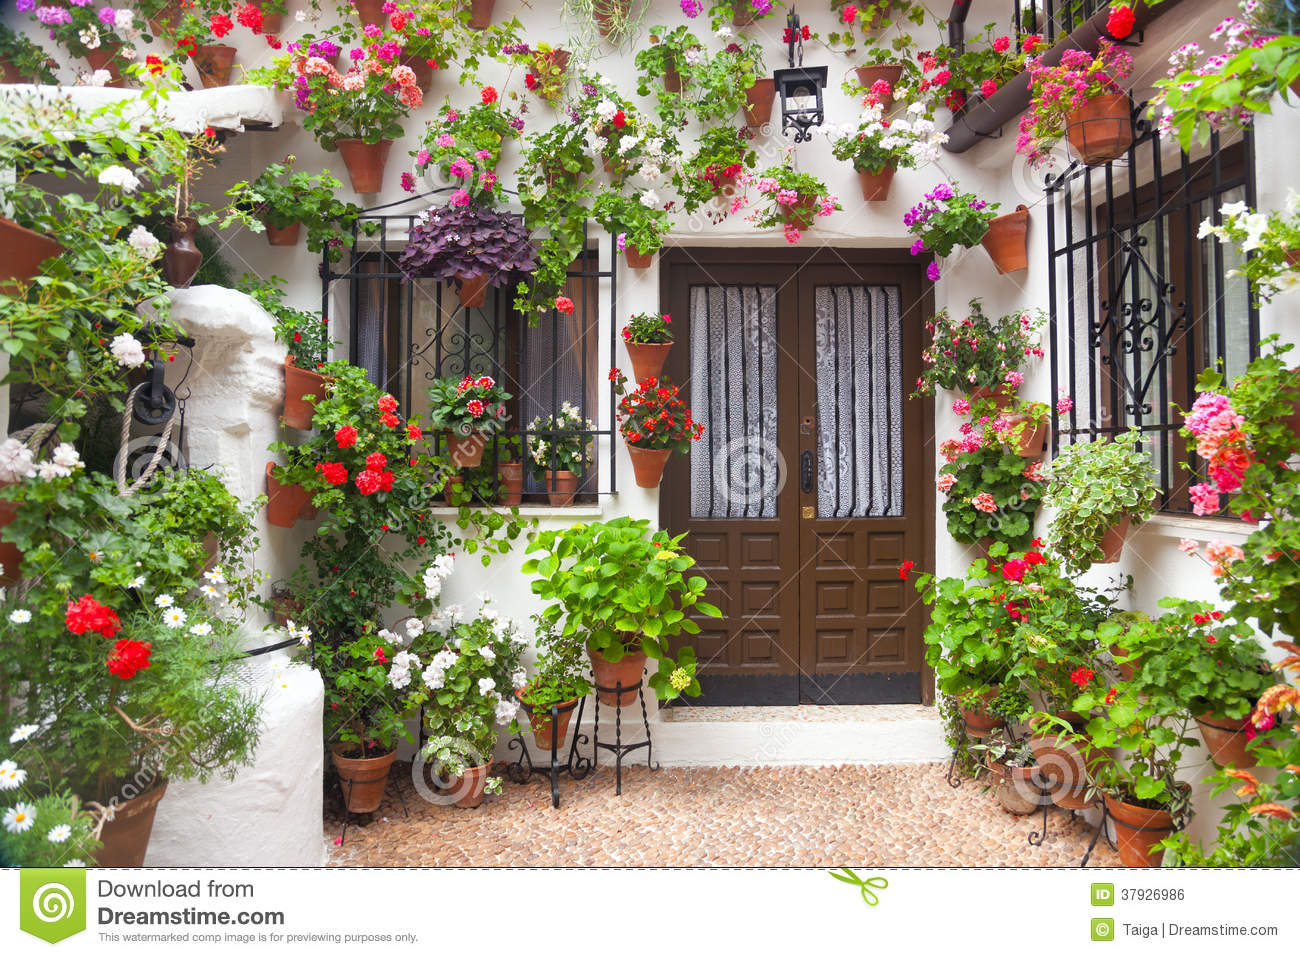 Flowers decoration of vintage courtyard spain europe for Decoration flowers